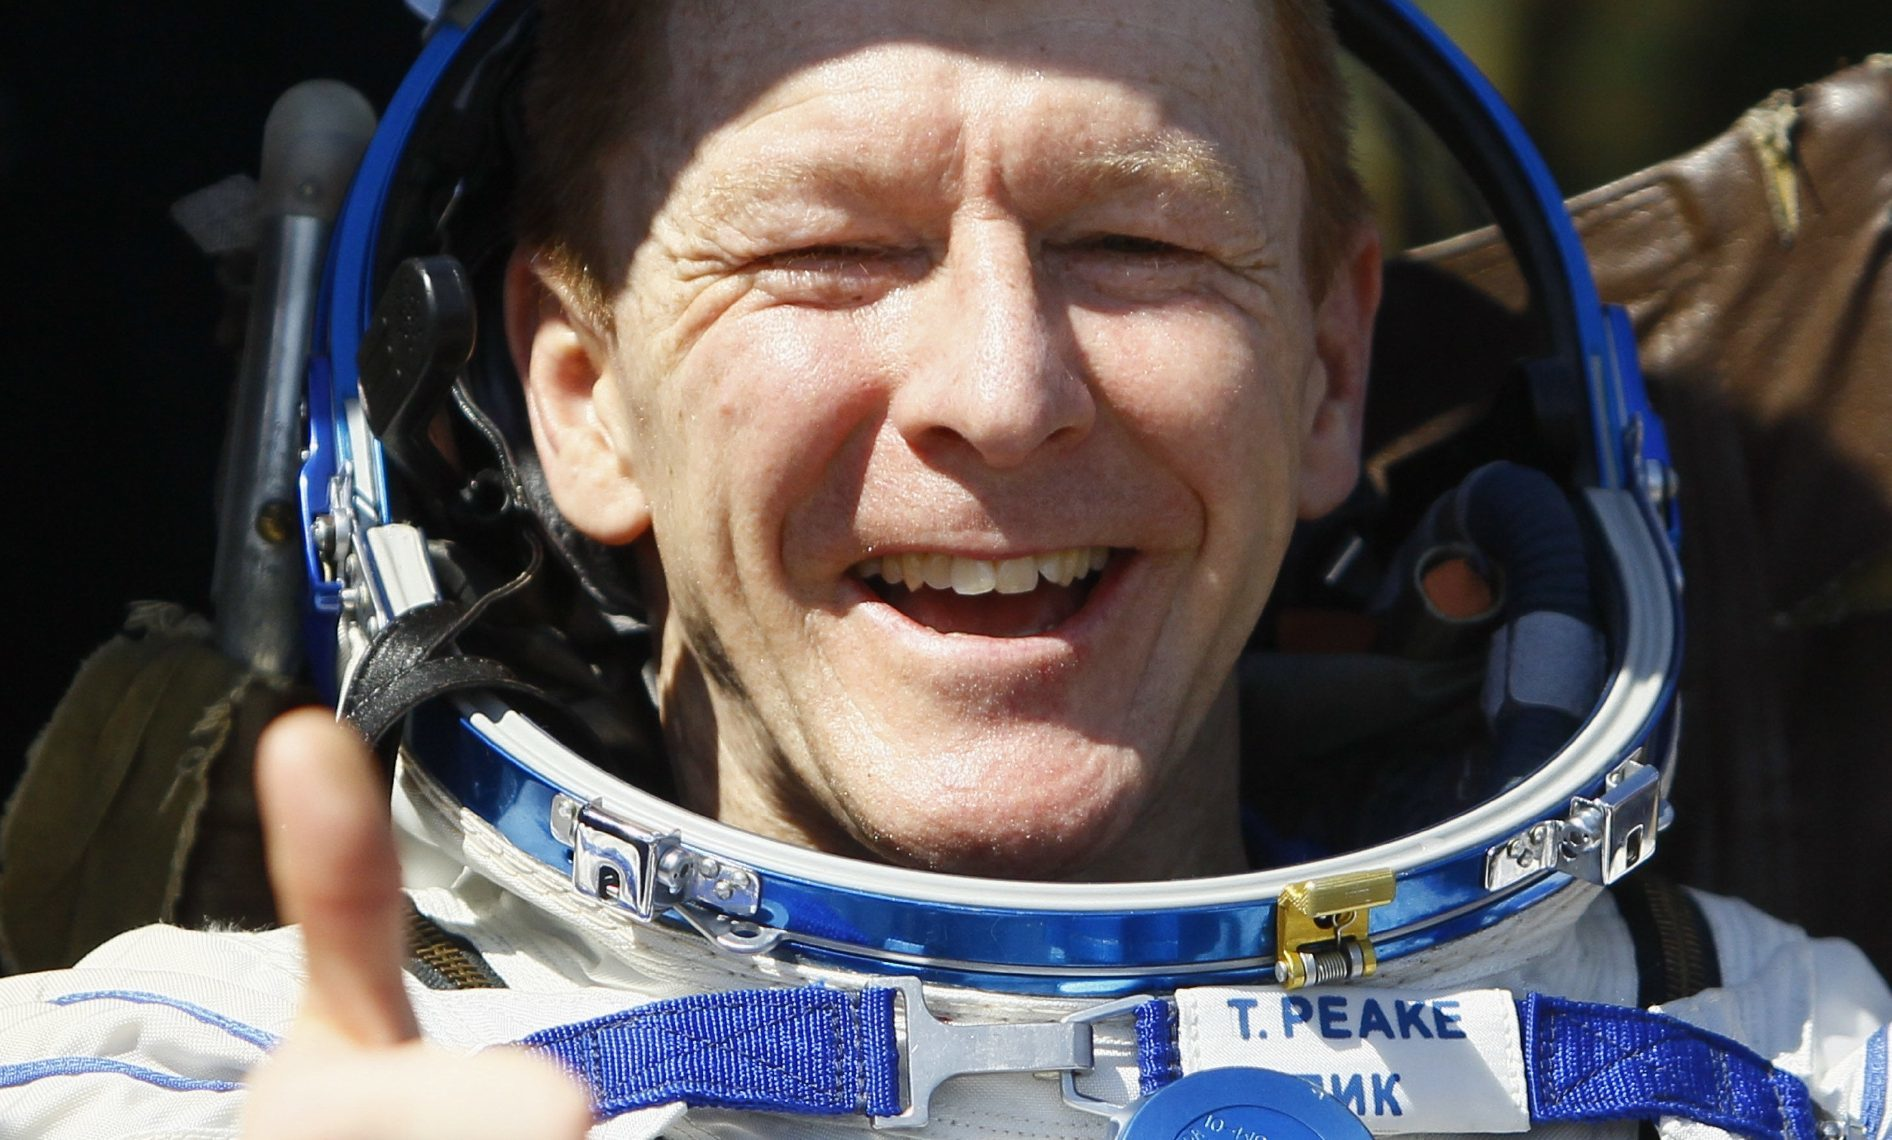 Tim Peake gives a thumbs-up shortly after landing.